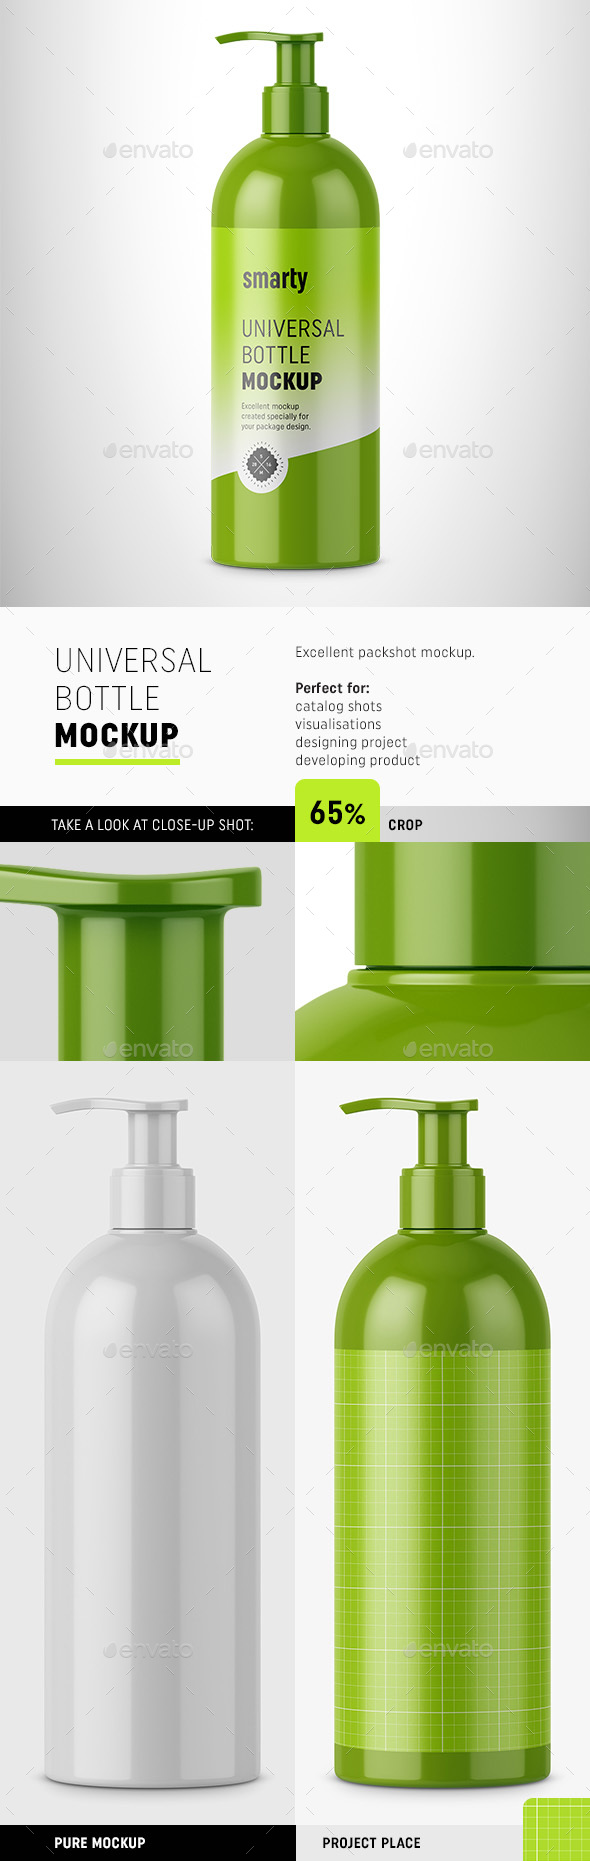 Glossy Bottle with Pump Mockup - Beauty Packaging